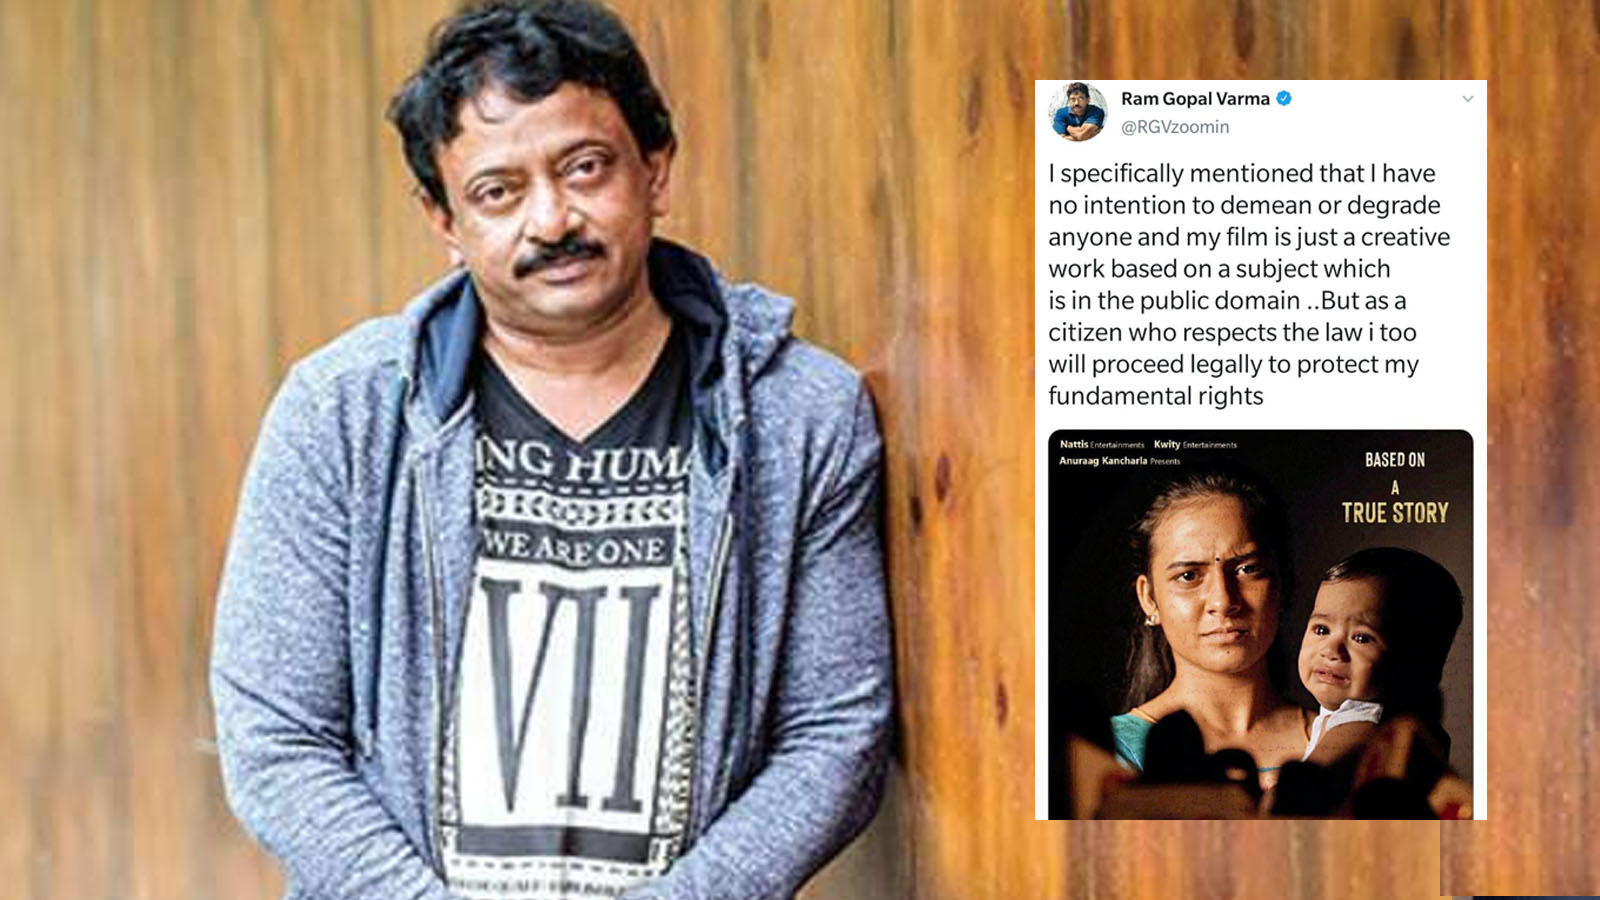 case-filed-against-ram-gopal-varma-under-section-153a-over-his-film-murder